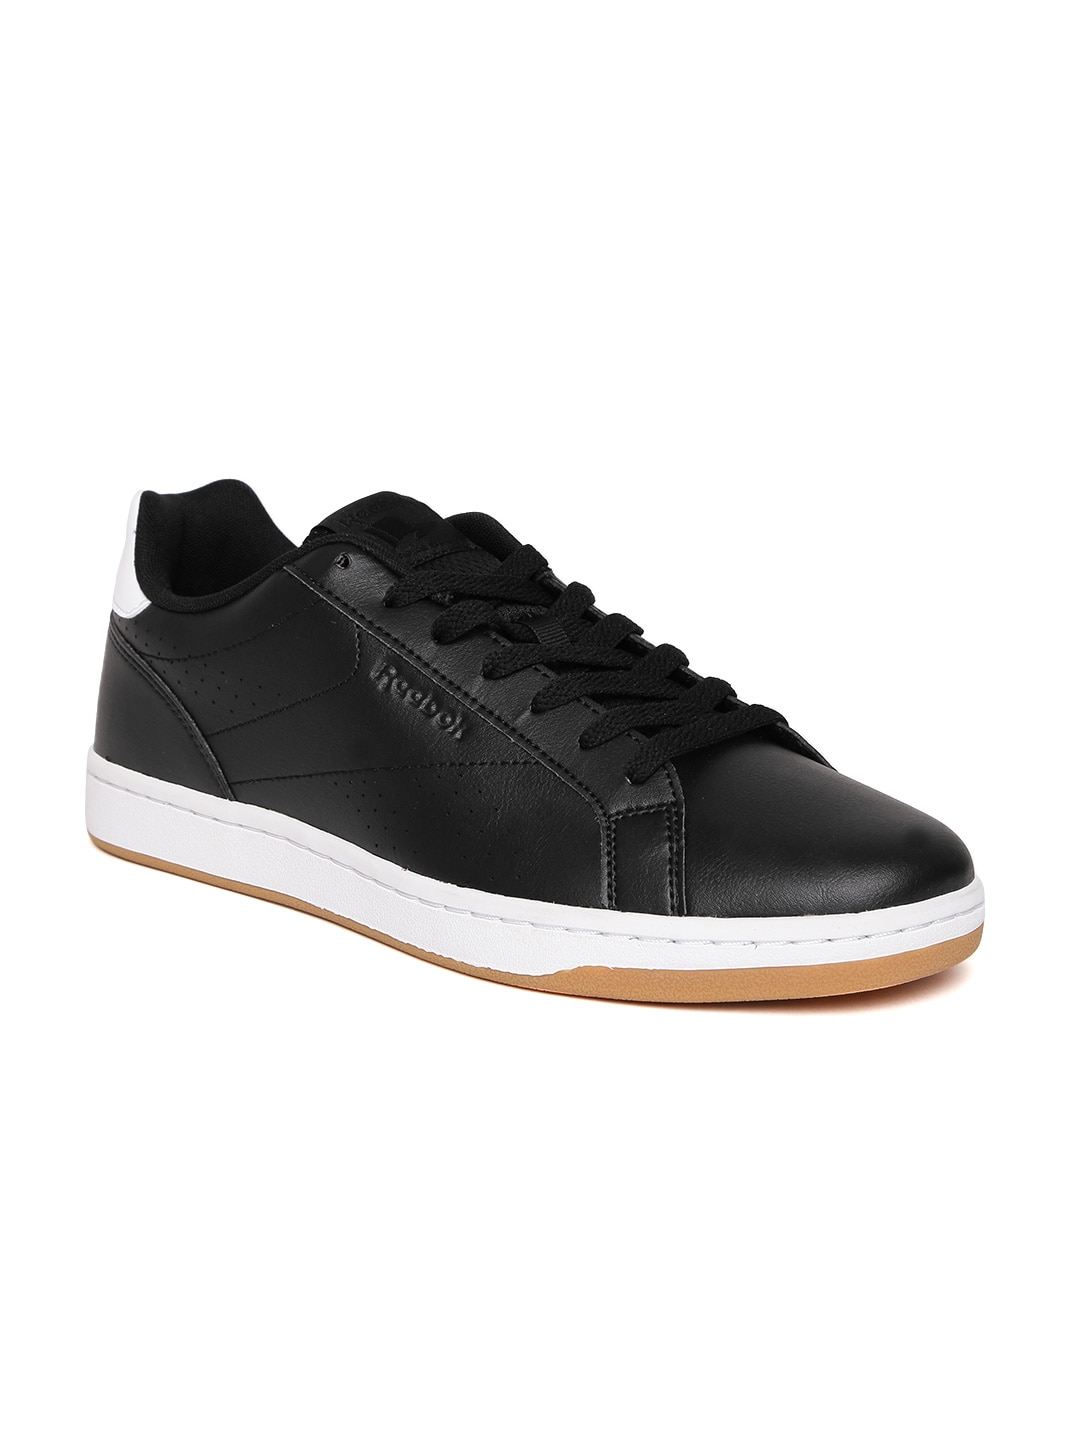 dd48b9a2964 Reebok Leather Shoes - Buy Reebok Leather Shoes online in India